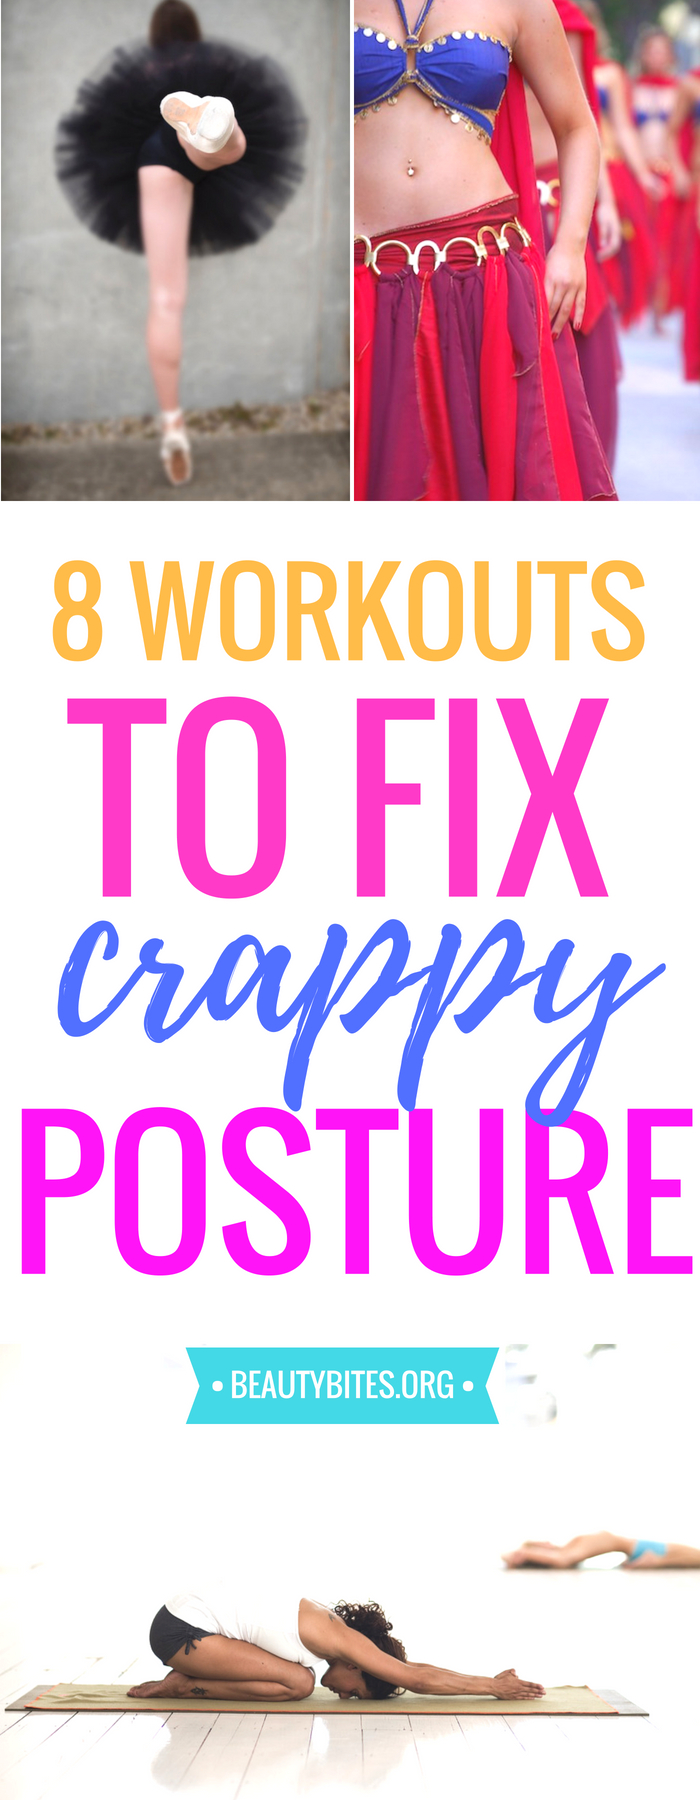 Fix your bad posture with these exercise routines! These at home workouts will help strengthen your upper body to get better posture! | www.beautybites.org